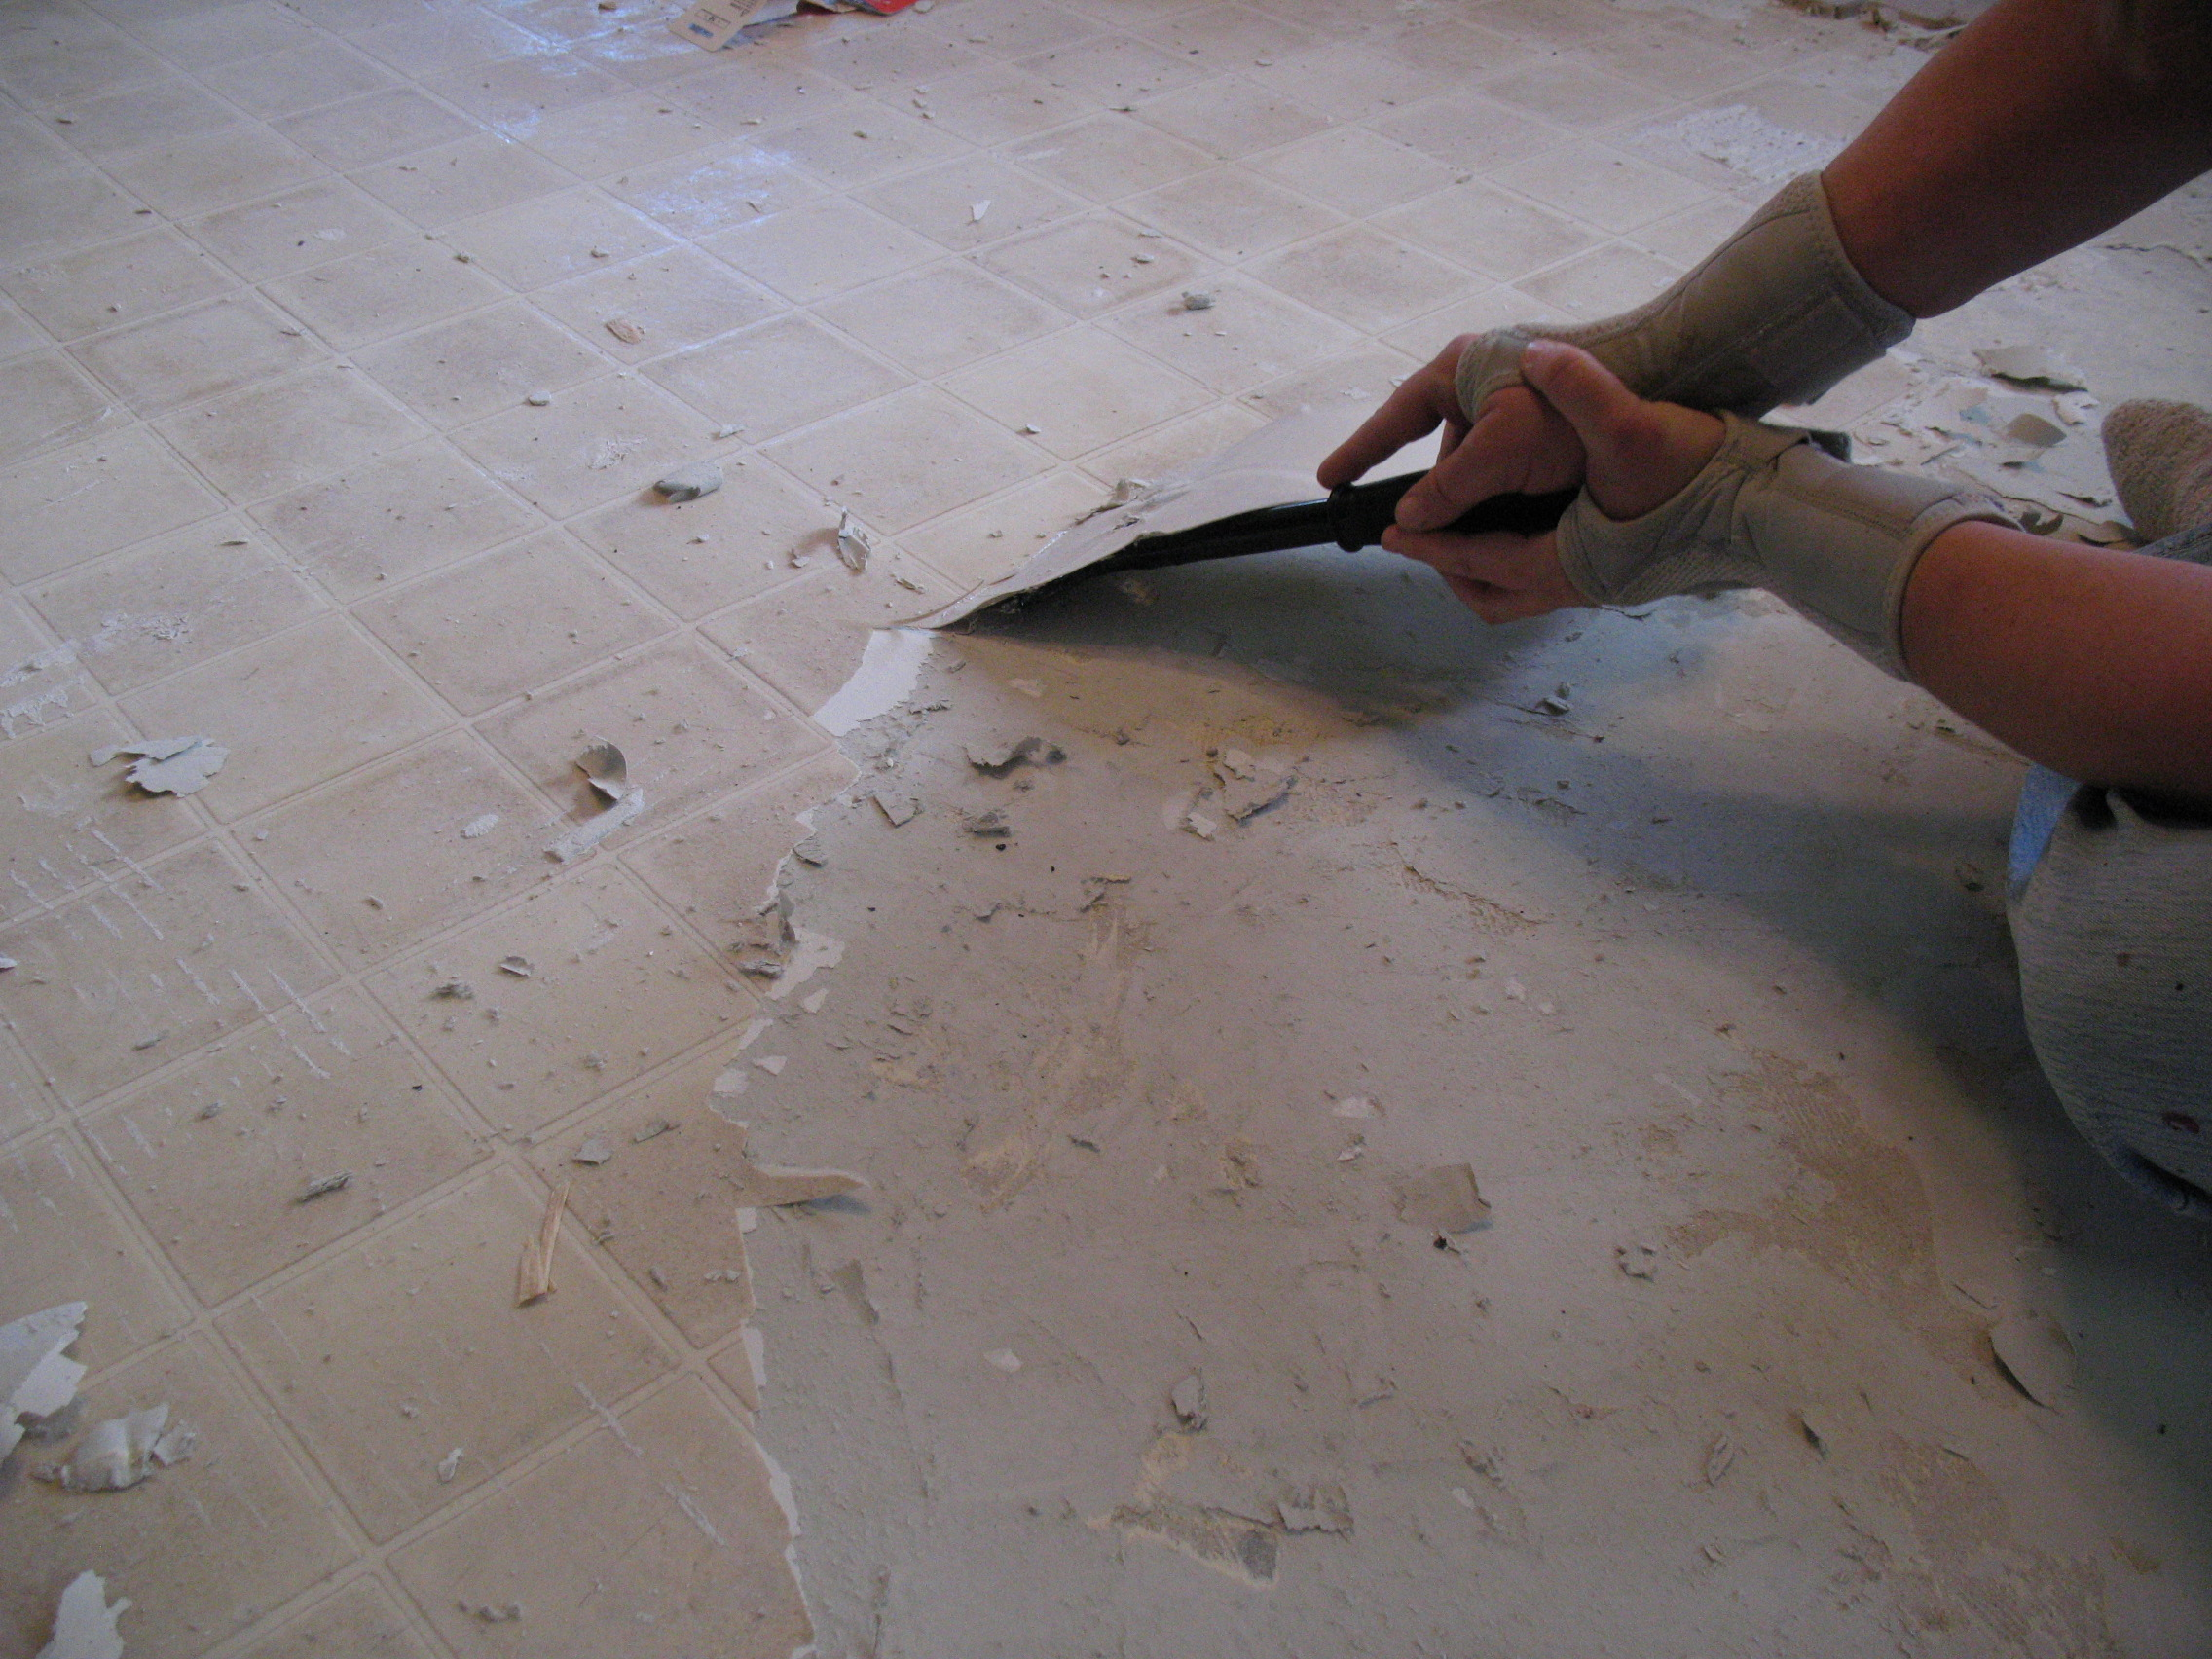 How to remove old floor tile adhesive images home flooring design best way to remove floor tile adhesive image collections home how to remove old floor tile doublecrazyfo Choice Image